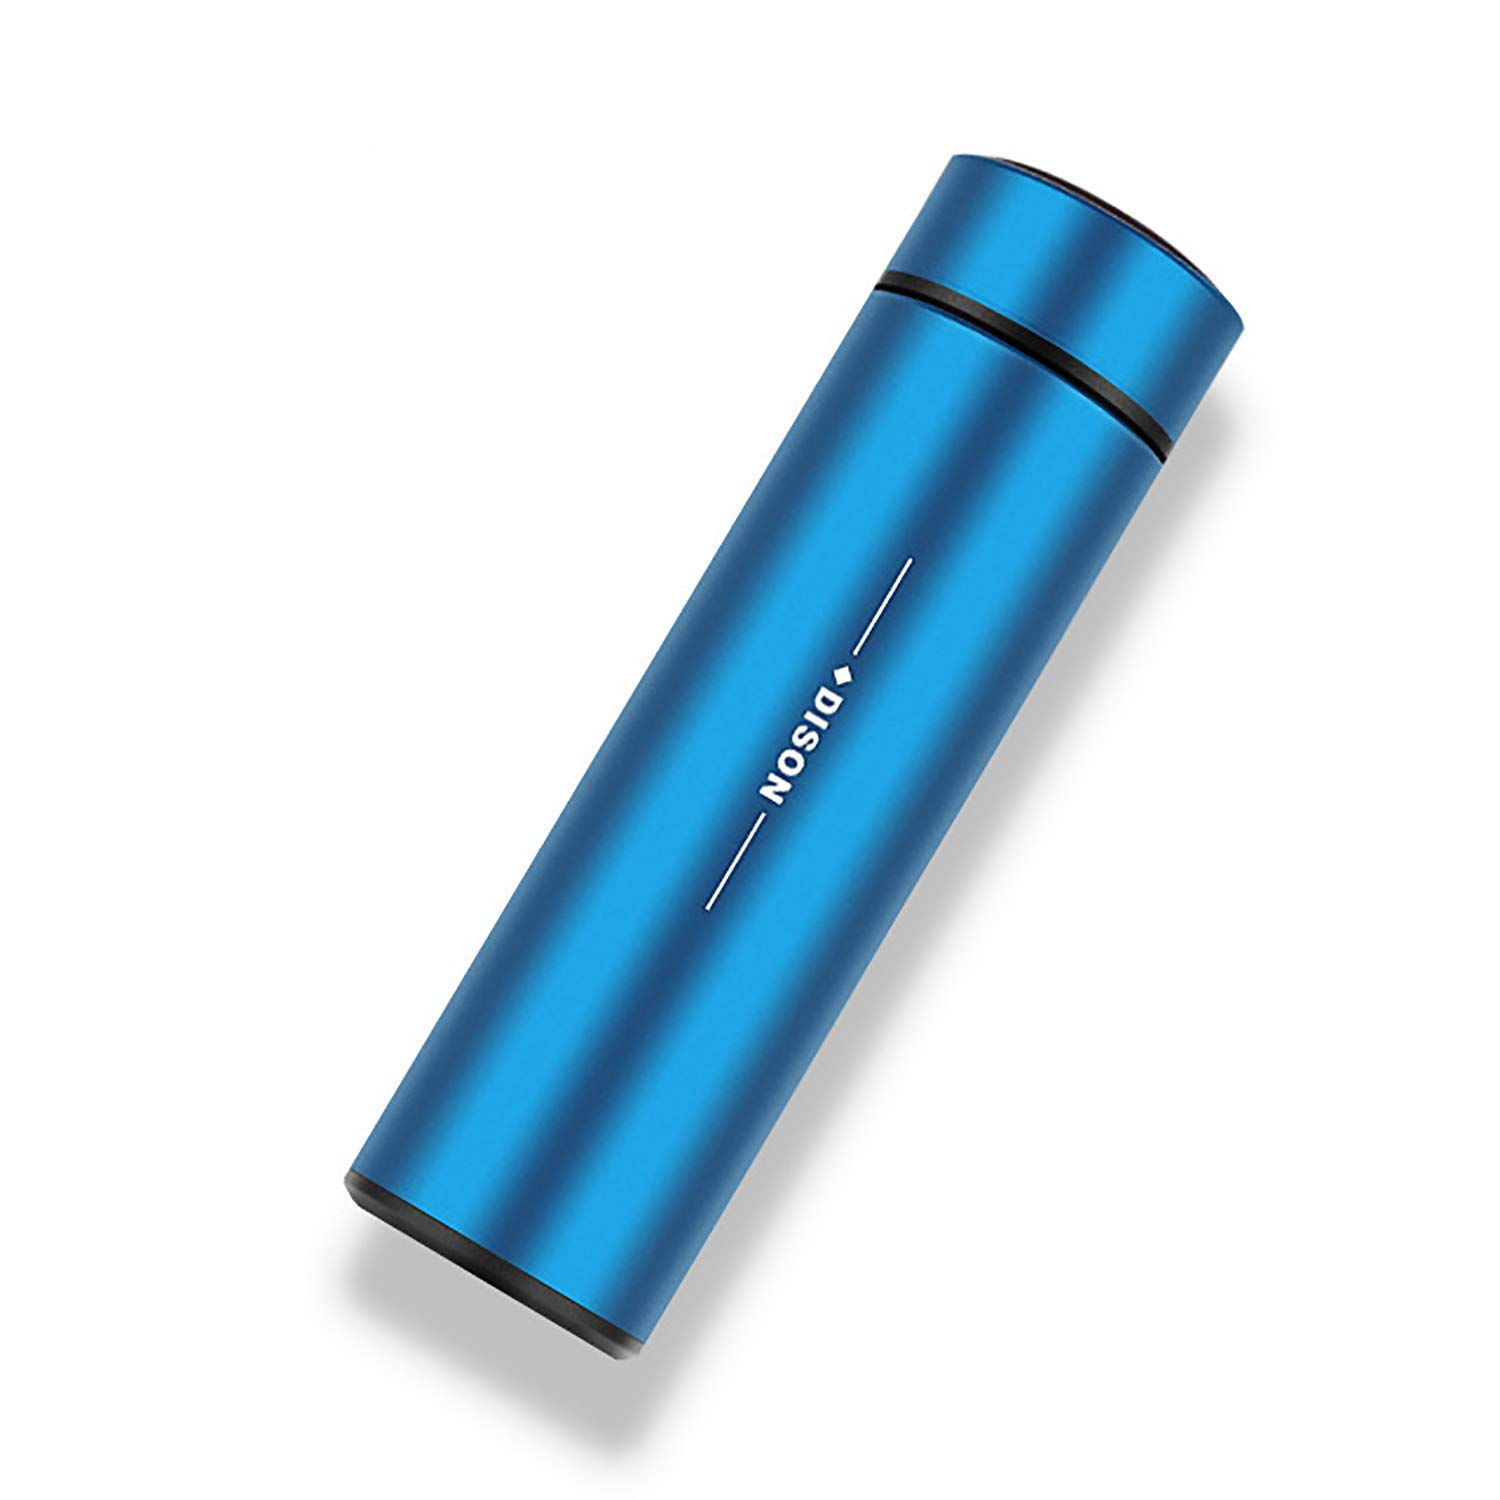 Dison Portable Insulin Cooler Mini Cold Refrigerato 24 Hours at 2-8 Chilled Cup Cooler Box Drug Constant Temperature Refrigerated Blue by dison (Image #8)